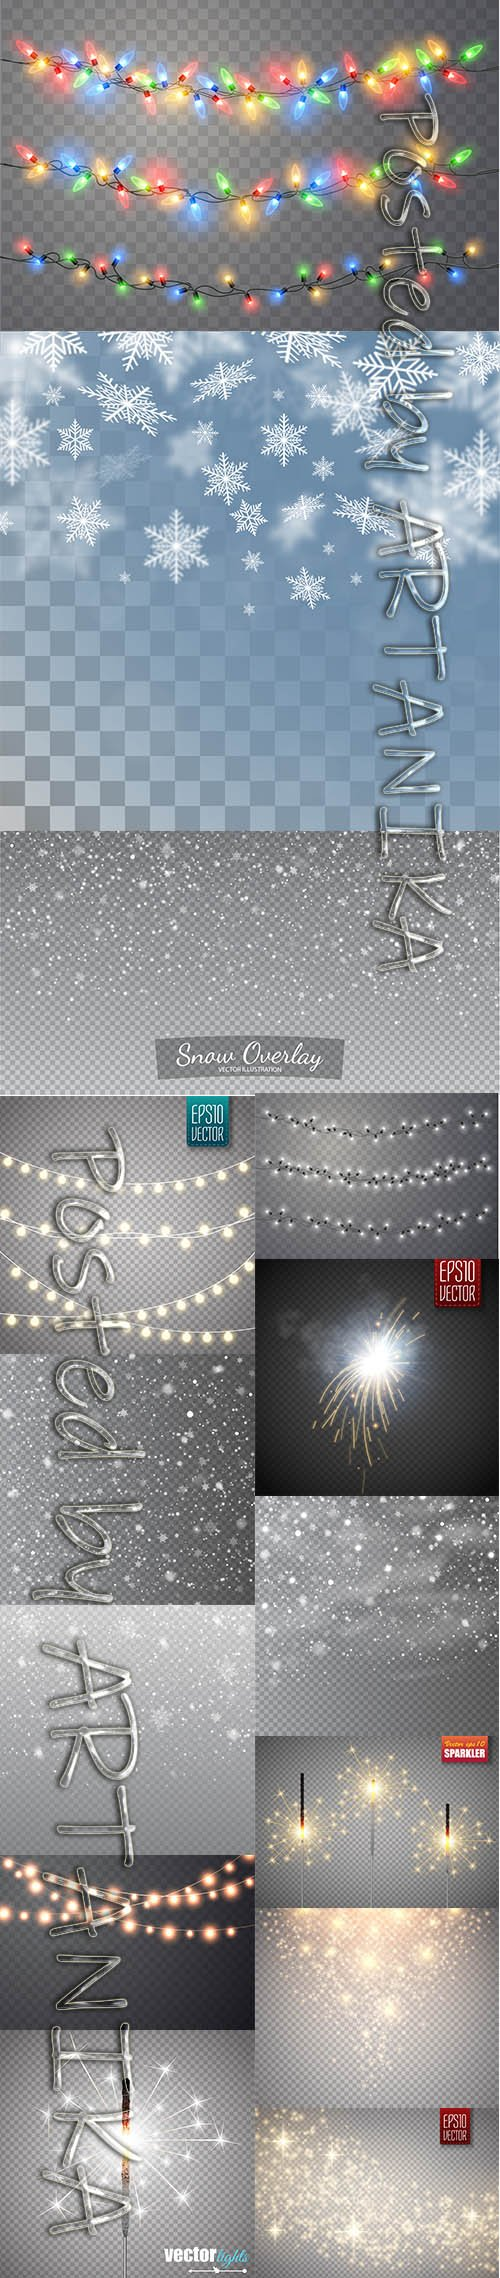 Festive Christmas Sparkler, Falling Snow and Fire Sparks Set Isolated Transparent